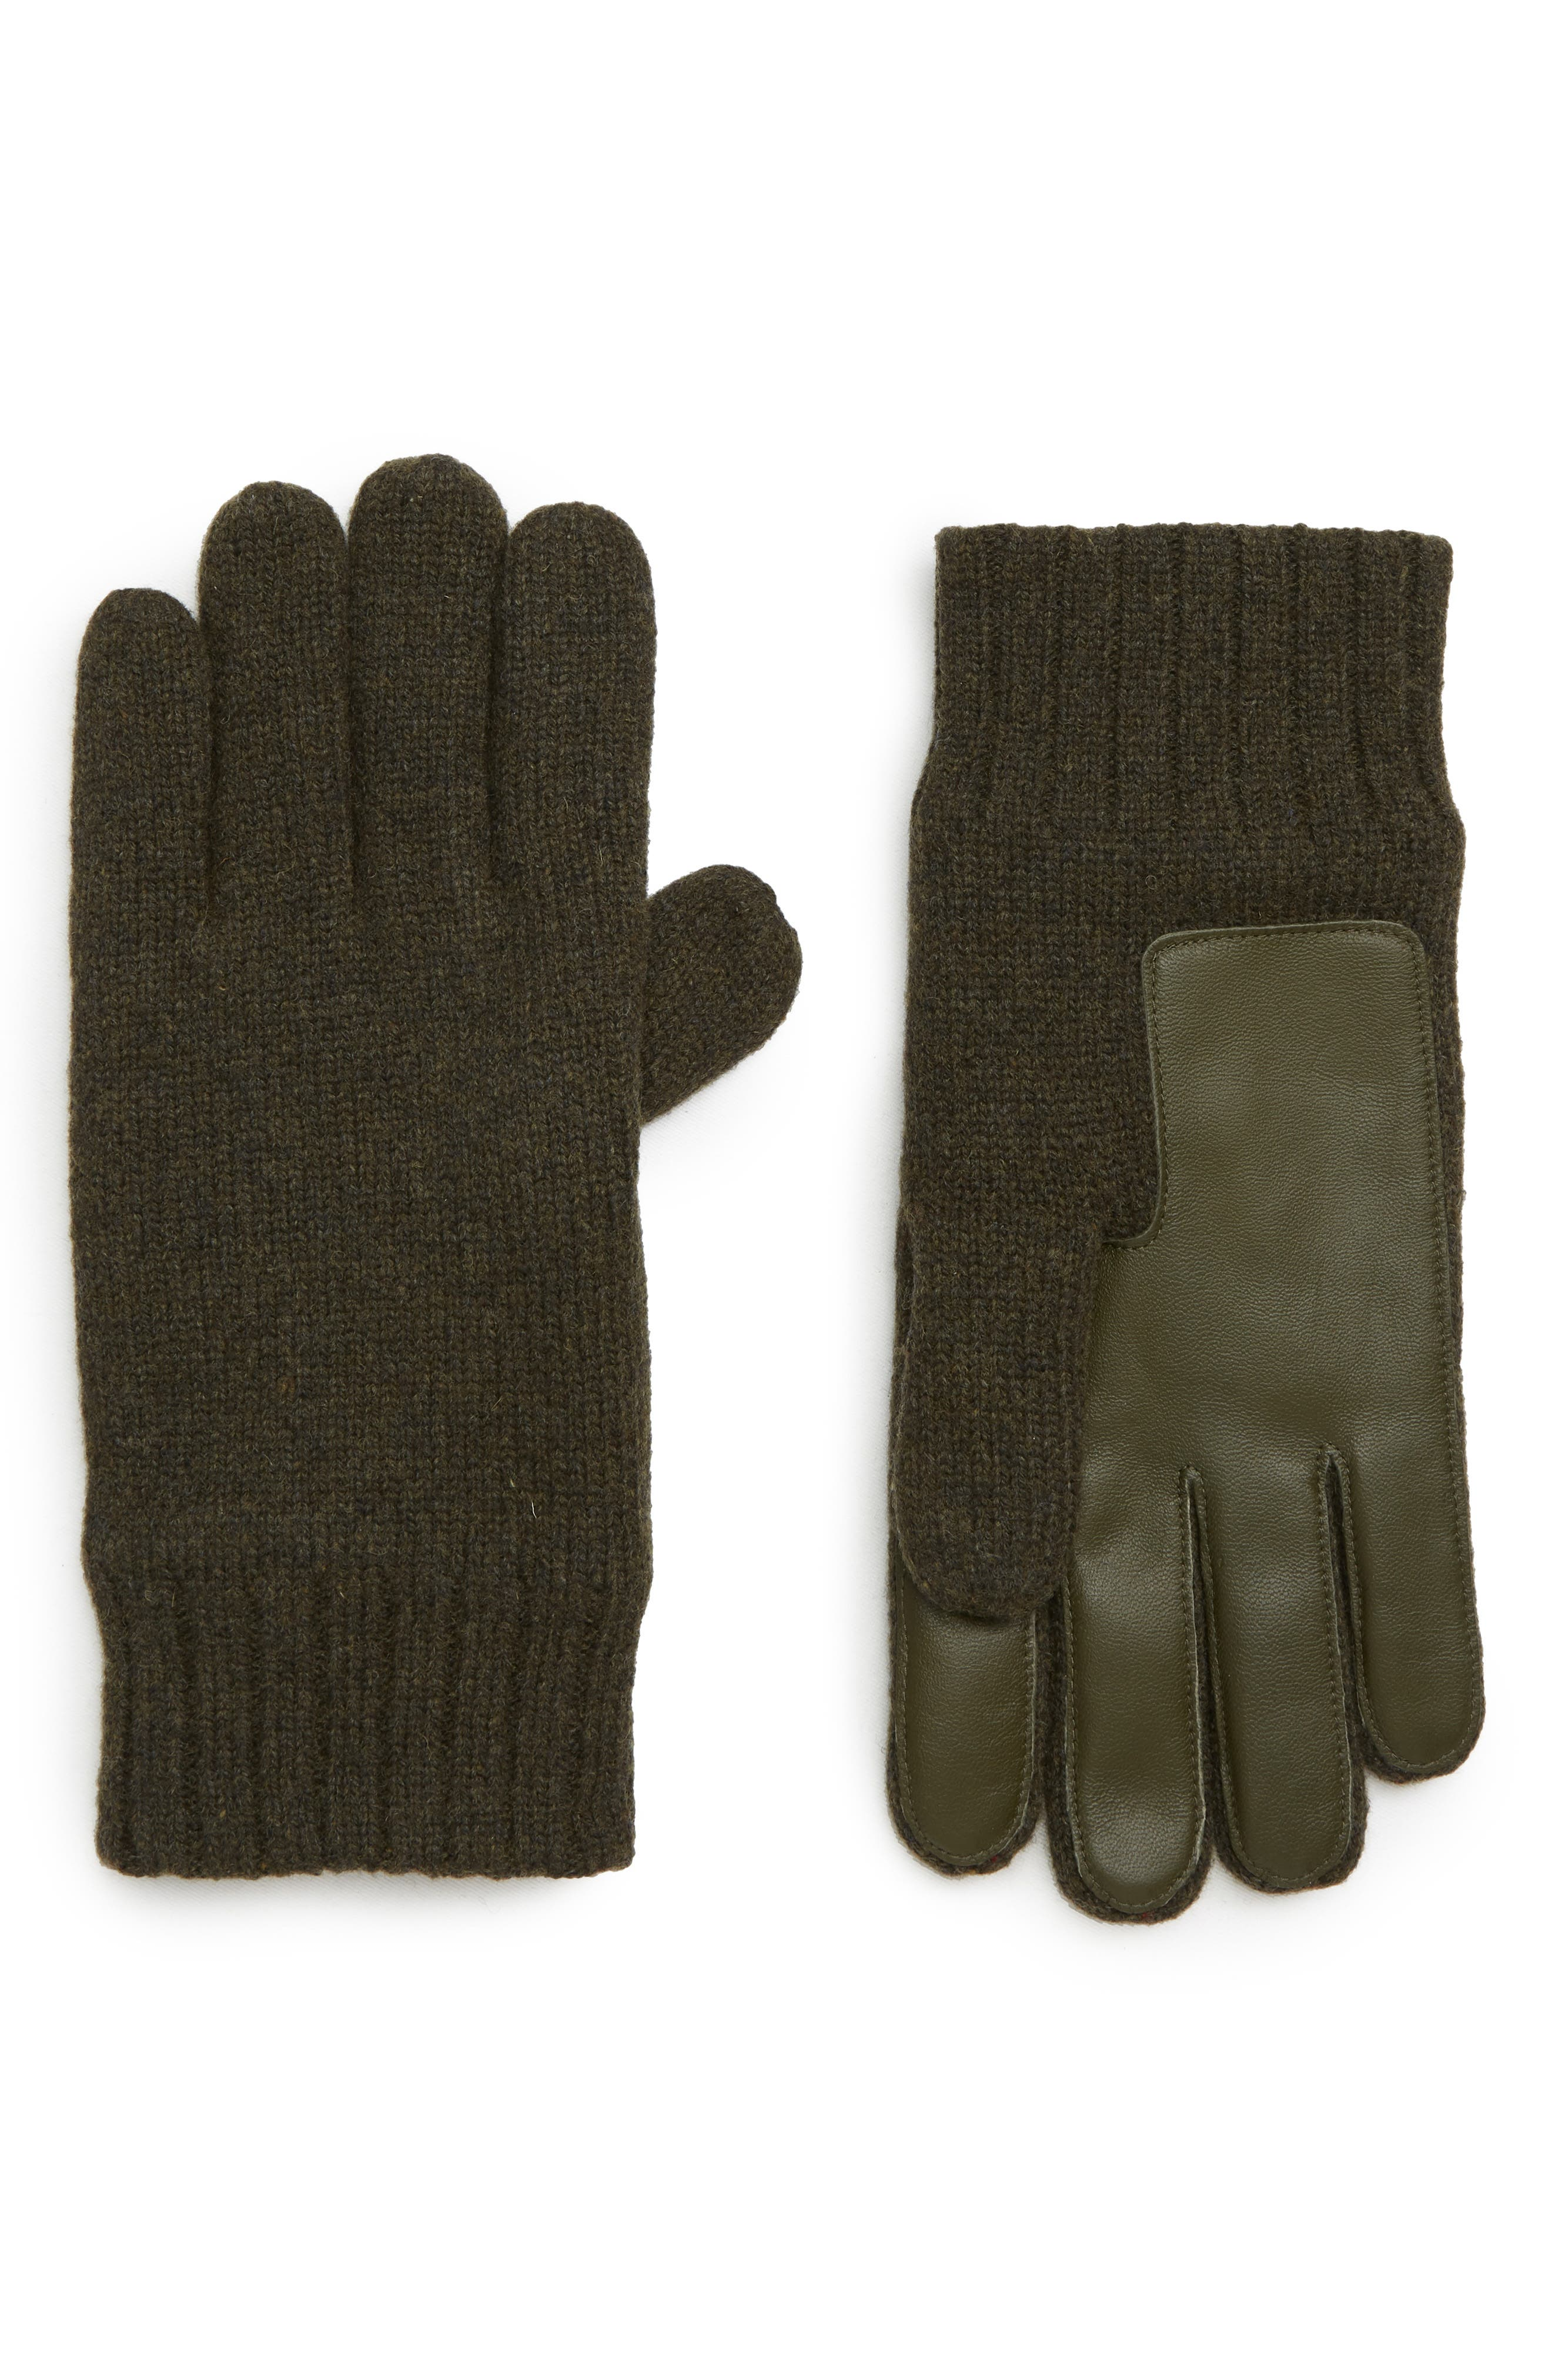 Ugg Leather Palm Knit Gloves, Green